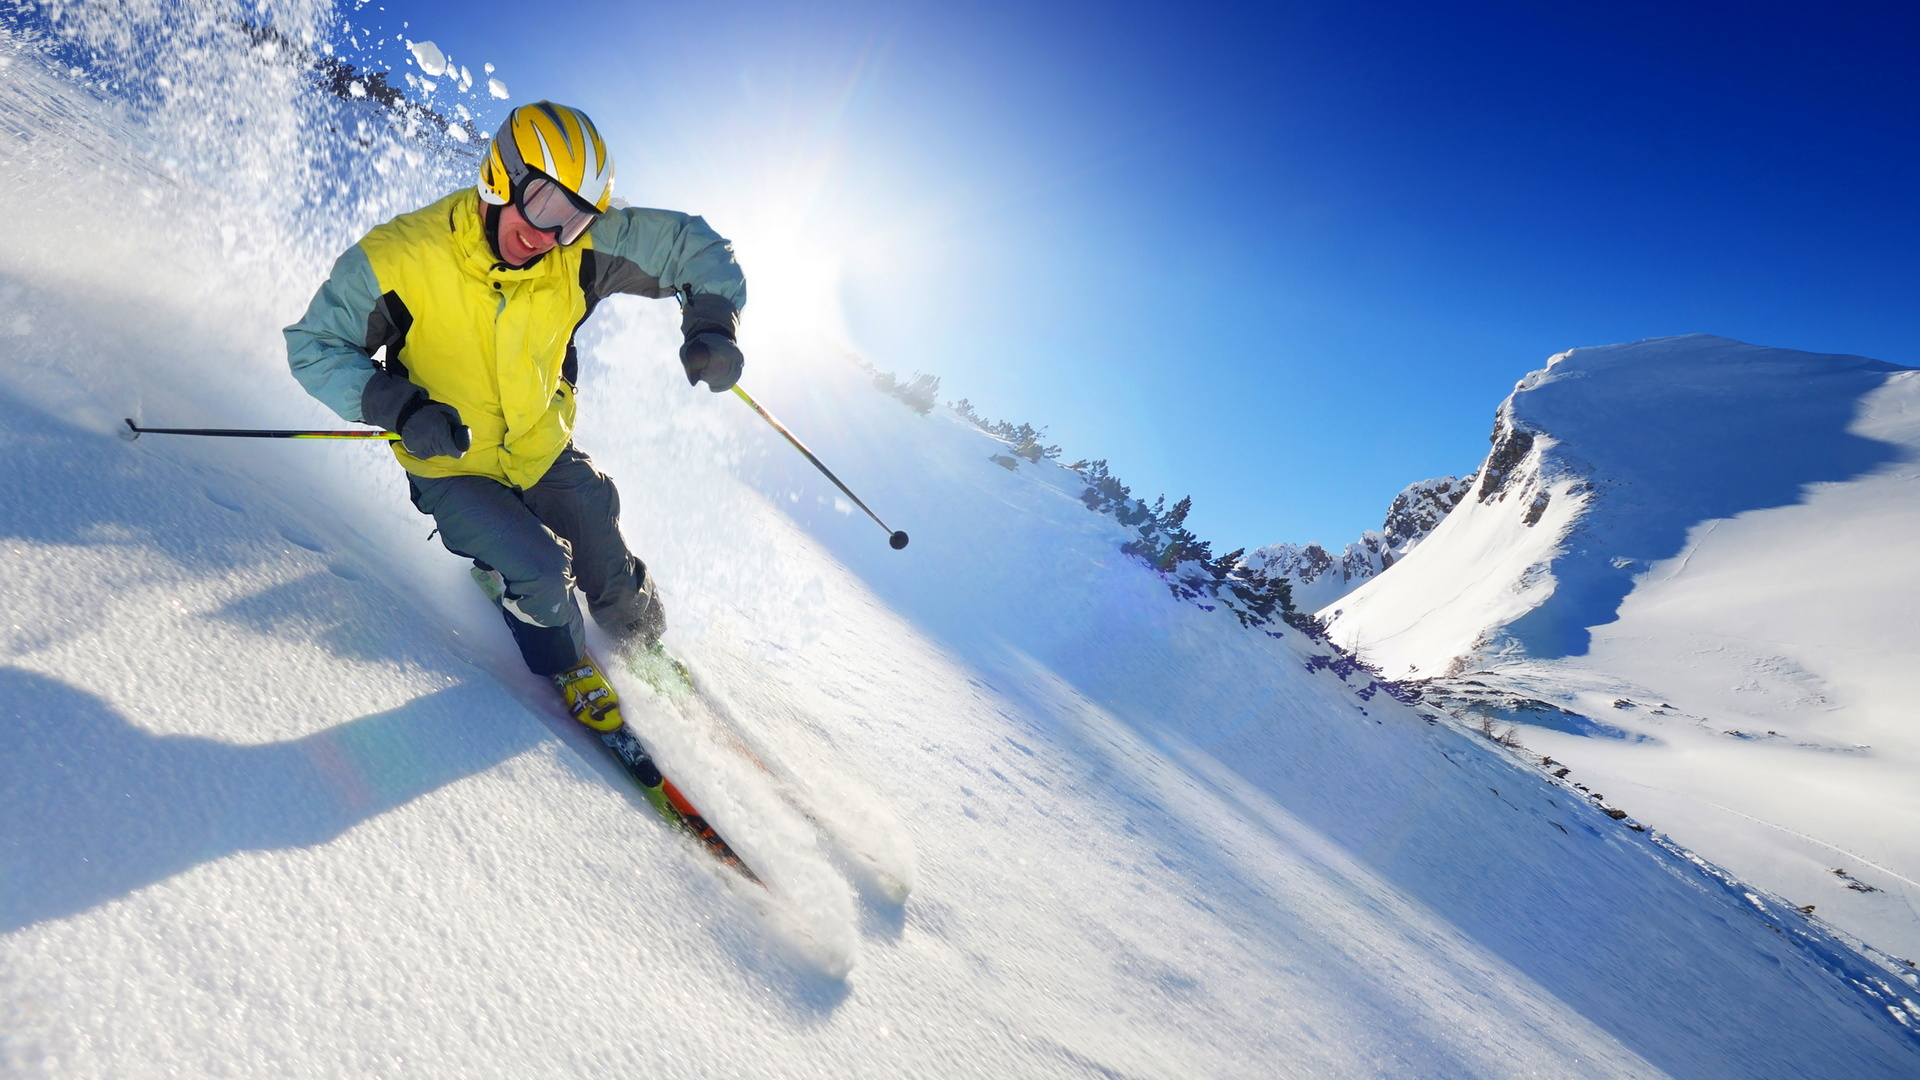 Wallpaper ski snow mountain skier skiing sun desktop wallpaper 1920x1080